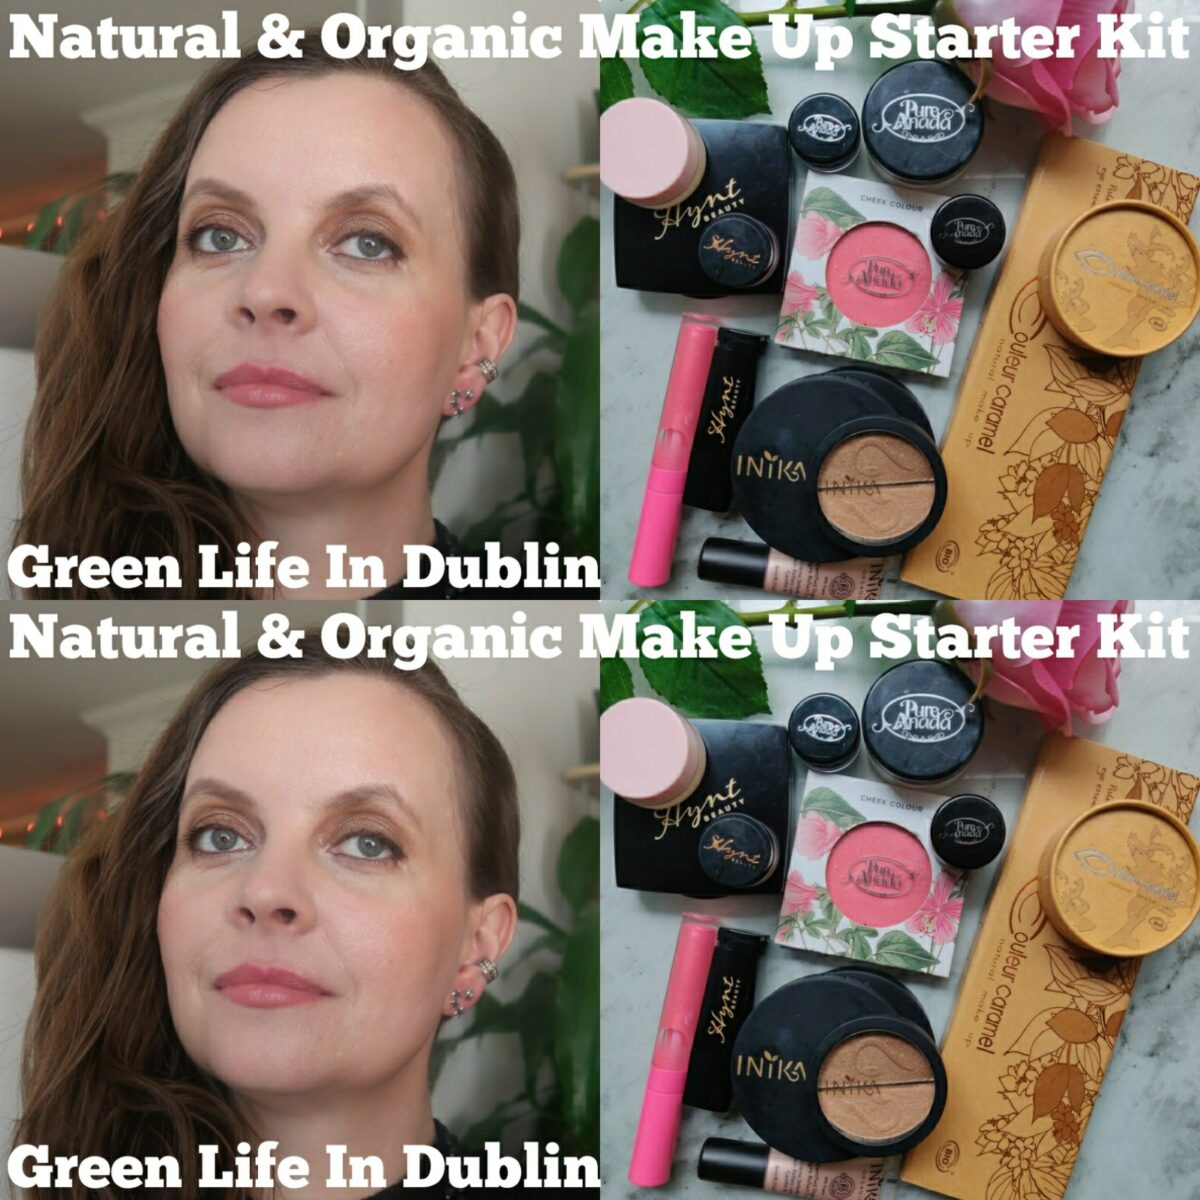 Natural & Organic Make Up Starter Kit – Green Life In Dublin